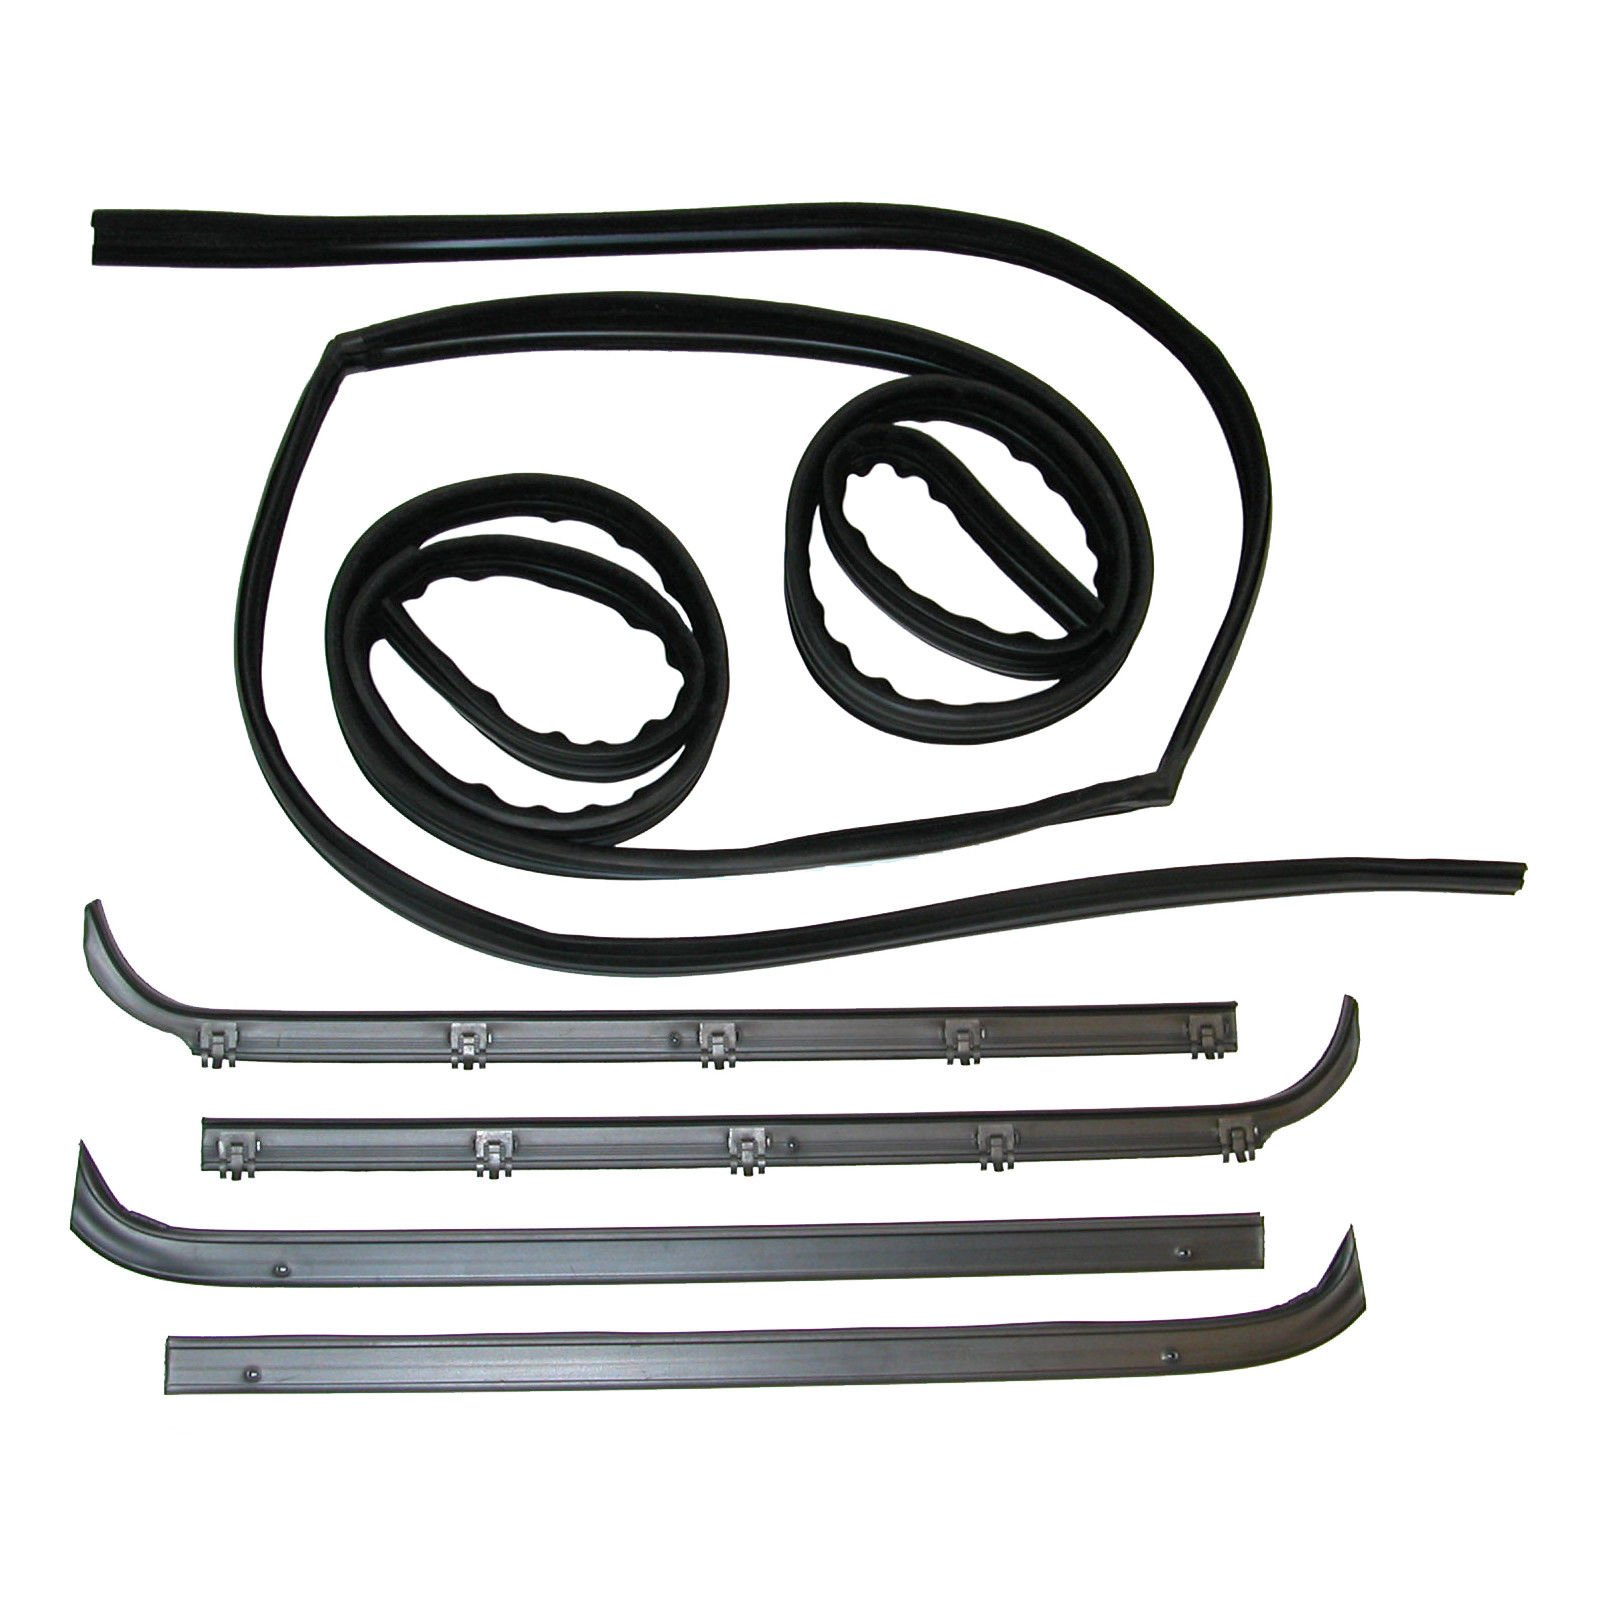 Make Auto Parts Manufacturing - Set of 6 Window Sweep & Run Channel Weatherstrip Seals Kit for Bronco 80-86